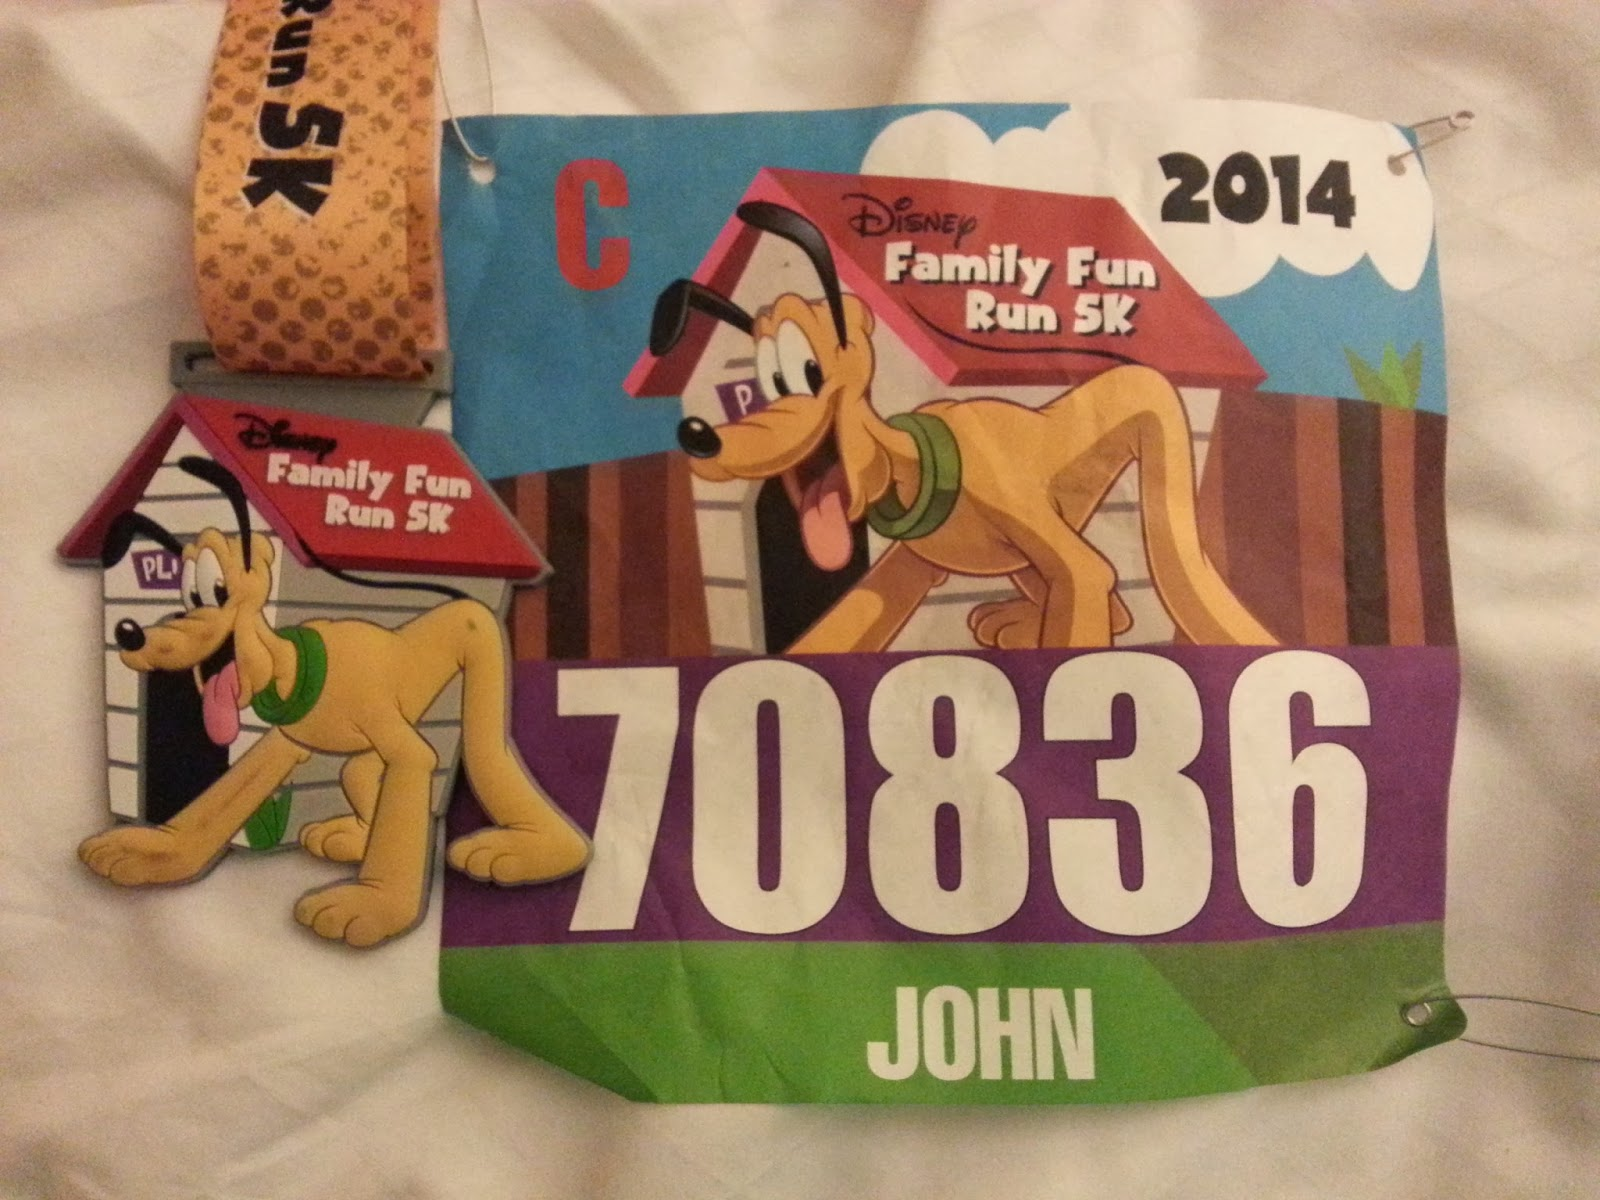 5K medal and bib.